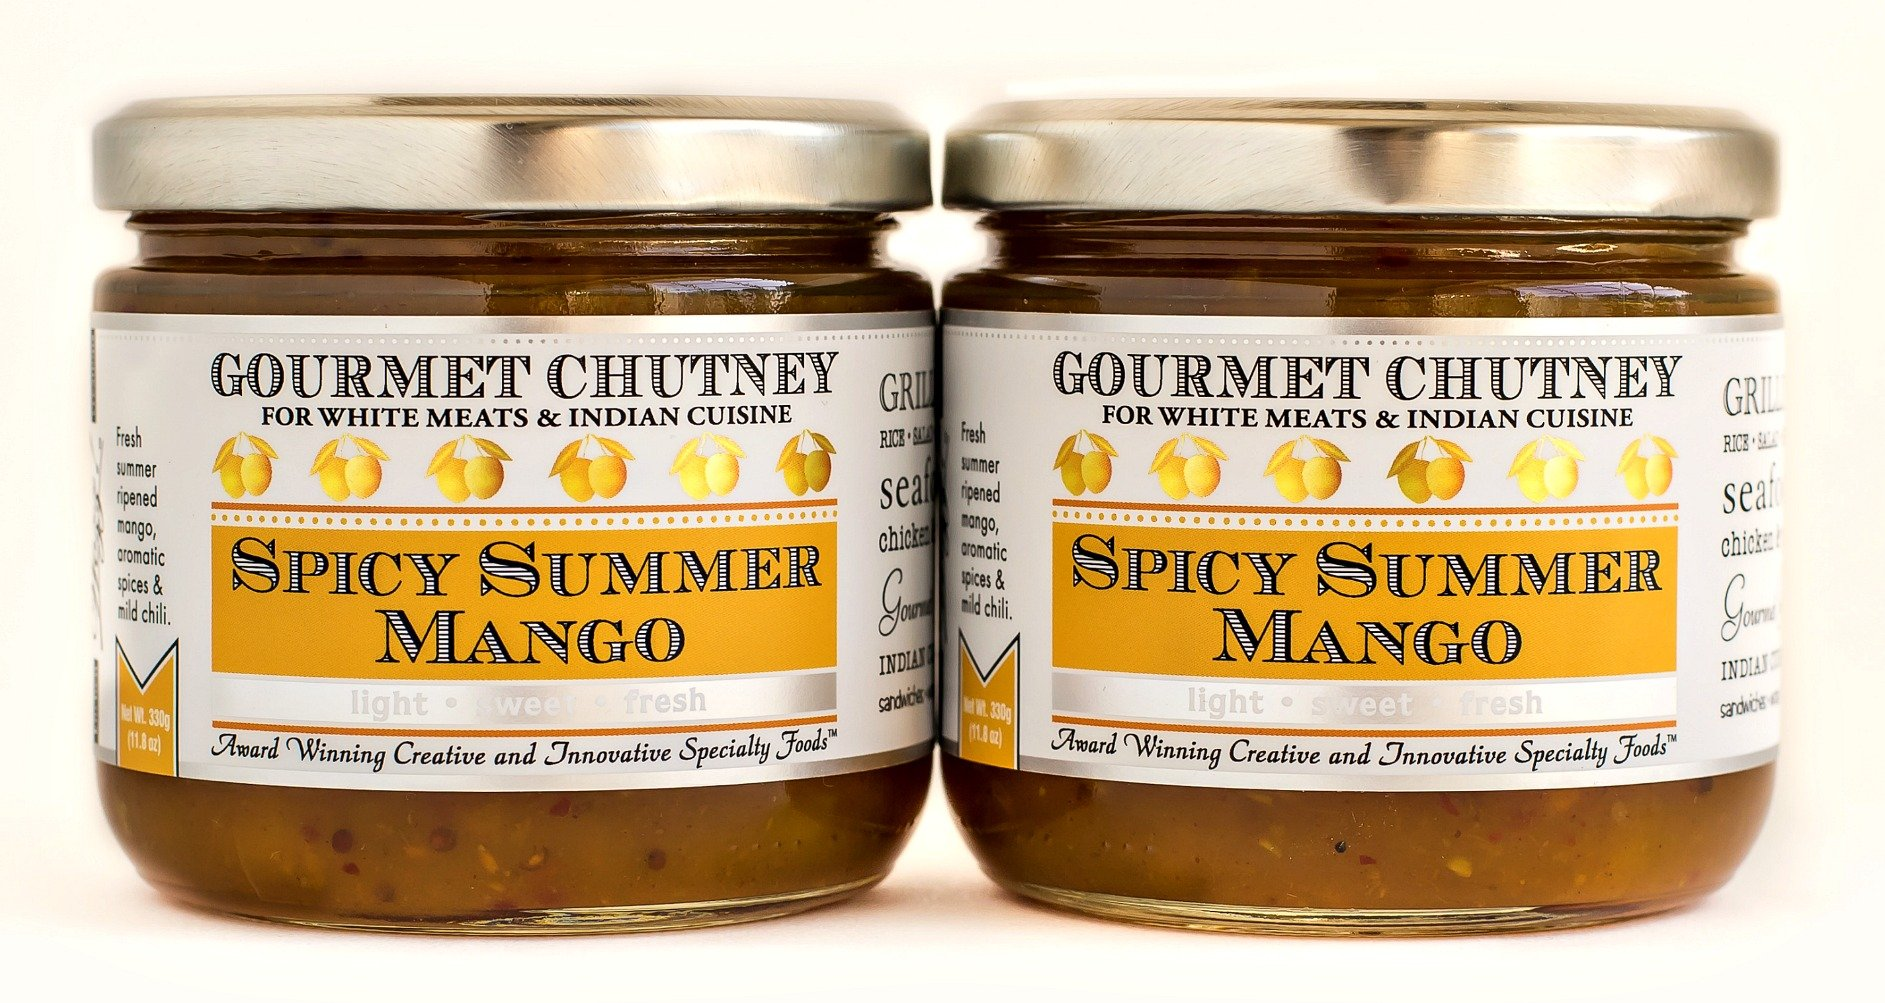 Wozz Kitchen Creations Spicy Summer Mango Chutney Set of 2 (each jar weighs 11.8 ounces) - All Natural - NON GMO